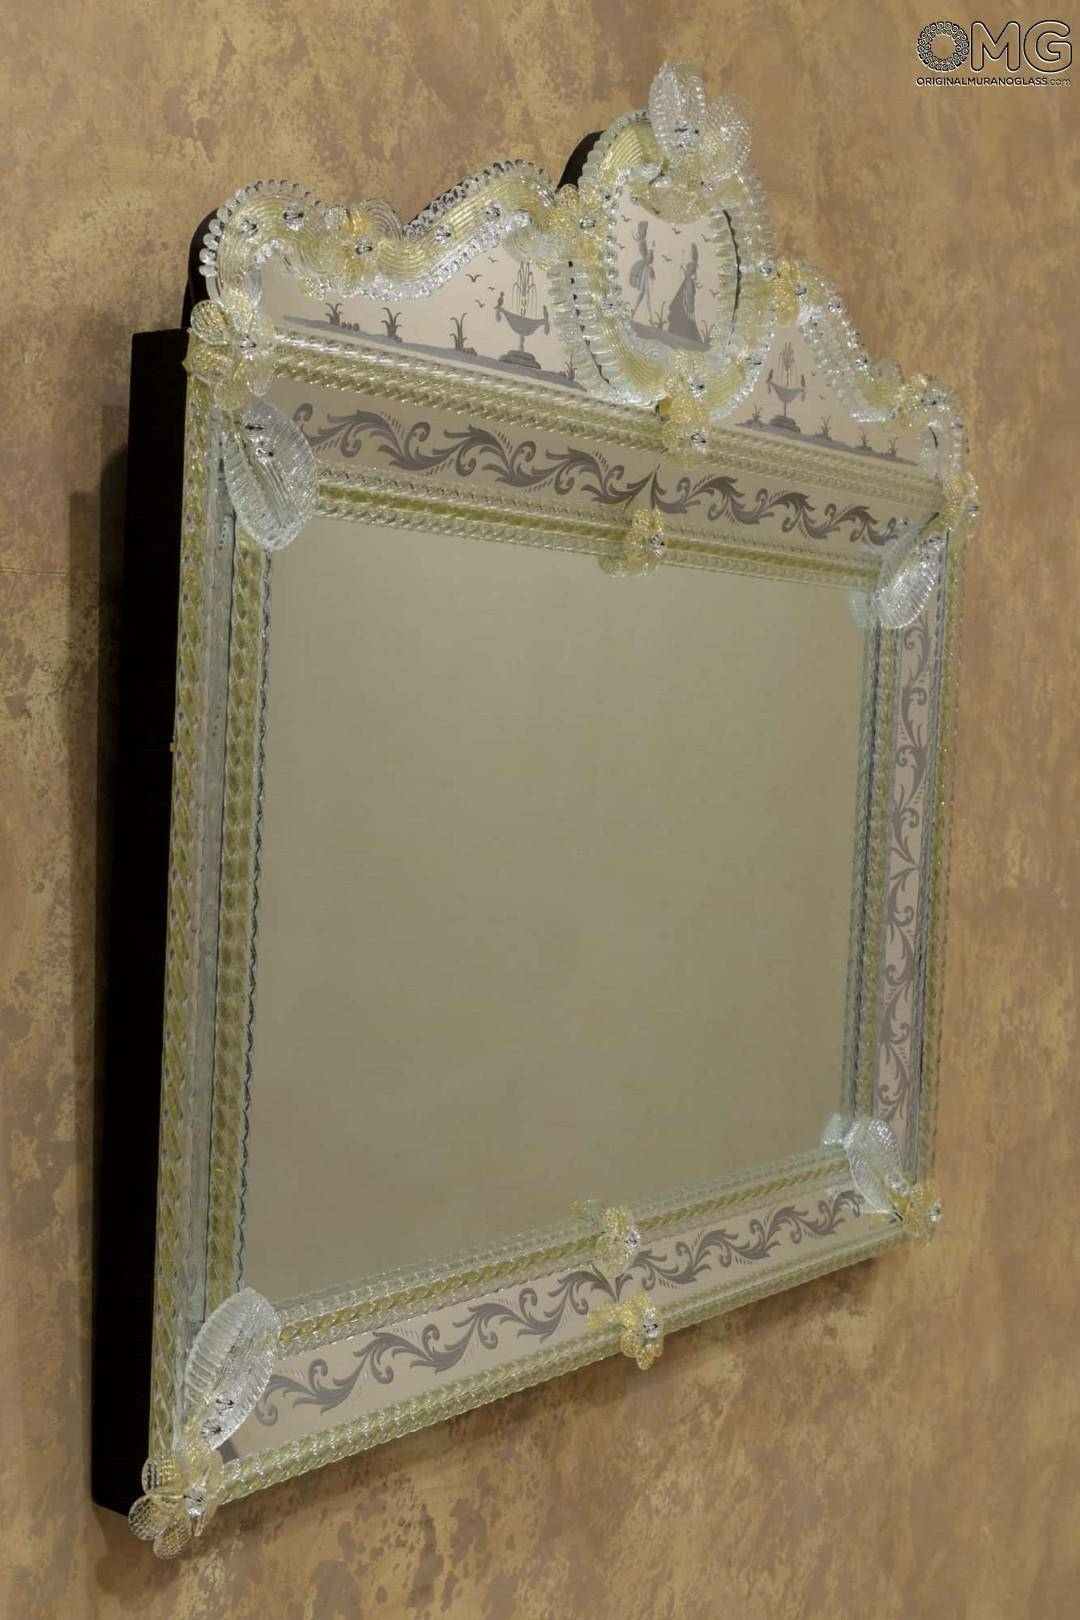 Venetian Mirrors - Engraved And With Murano Glass : Lovers - Wall within Gold Venetian Mirrors (Image 23 of 25)